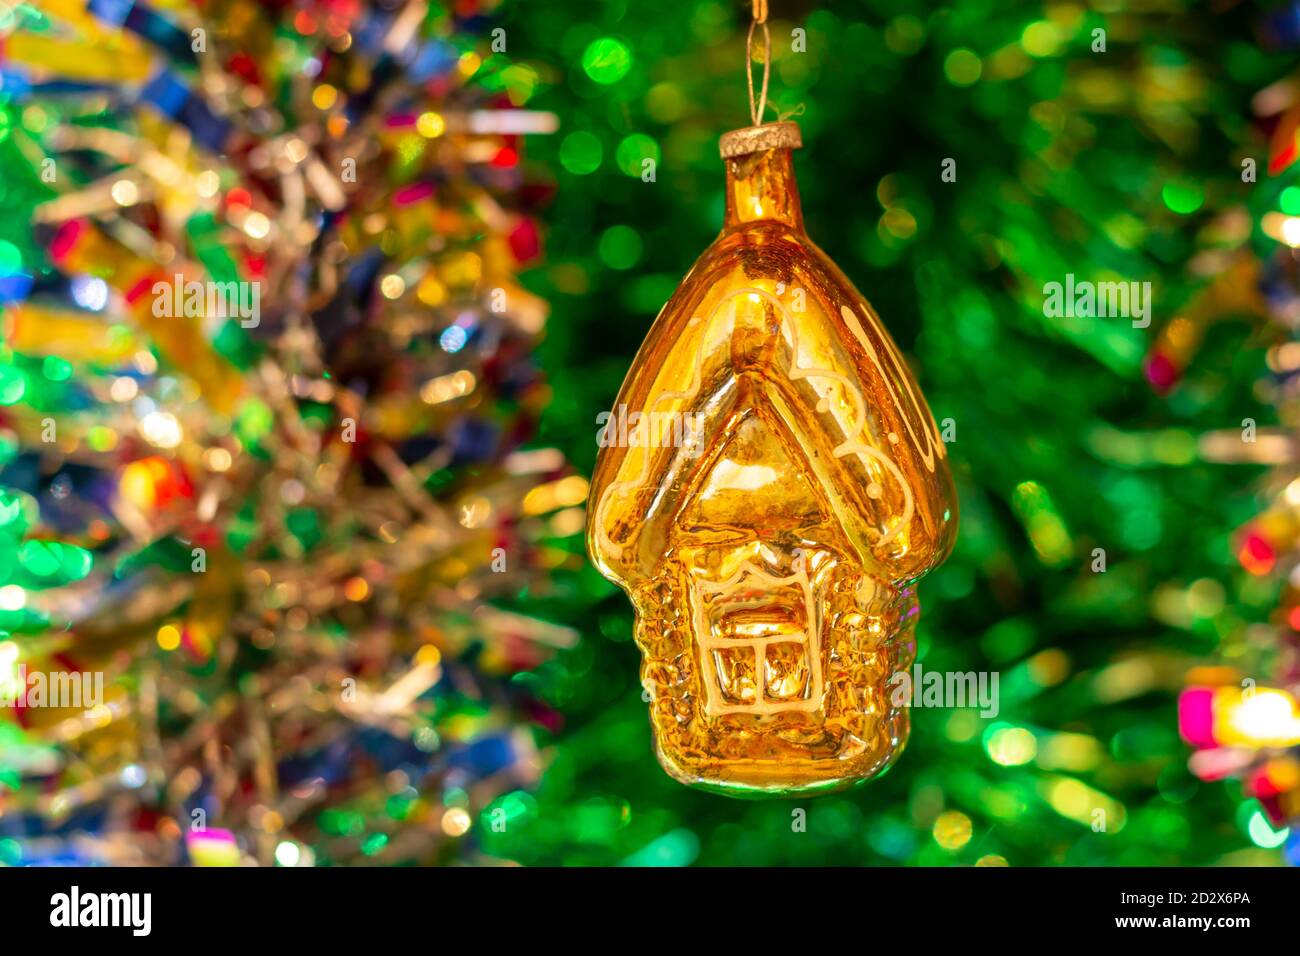 Vintage Glass Soviet New Year S Toy House Against The Background Of A Christmas Tree And Colorful Bright Tinsel Stock Photo Alamy